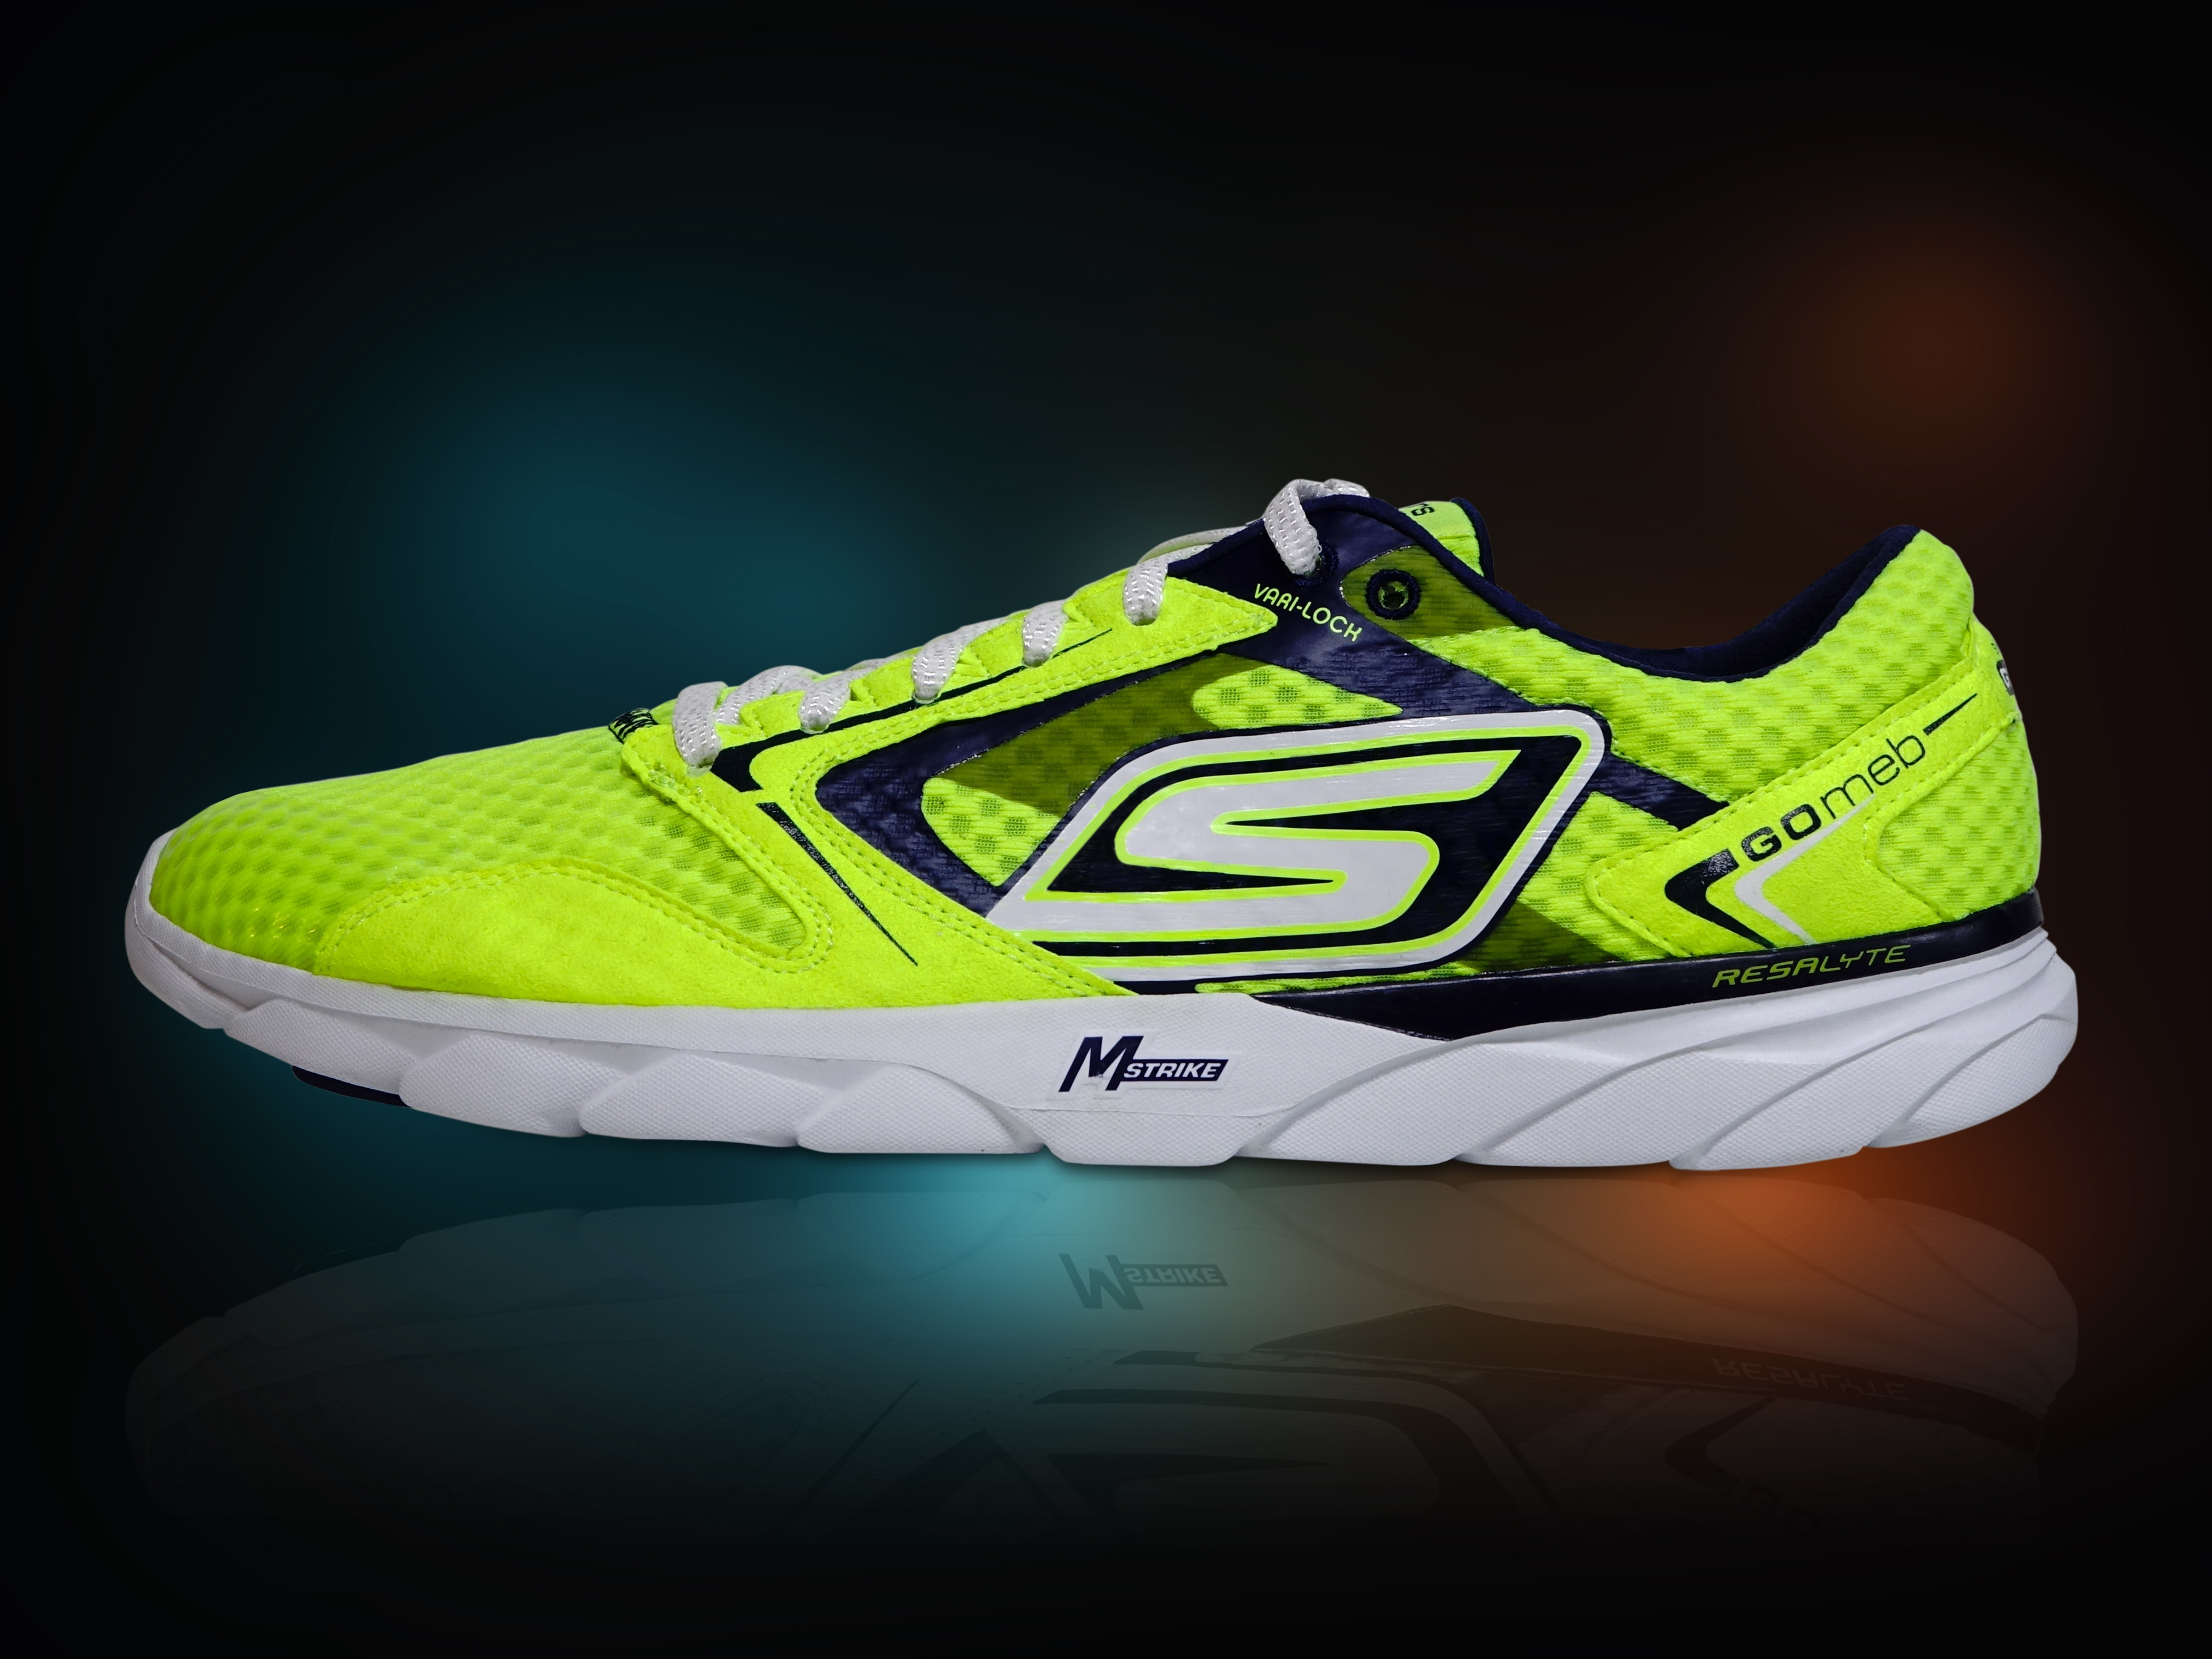 Sketchers Green and Black Shoe, Bright, Luminous, Rubber shoes, Running shoe, HQ Photo